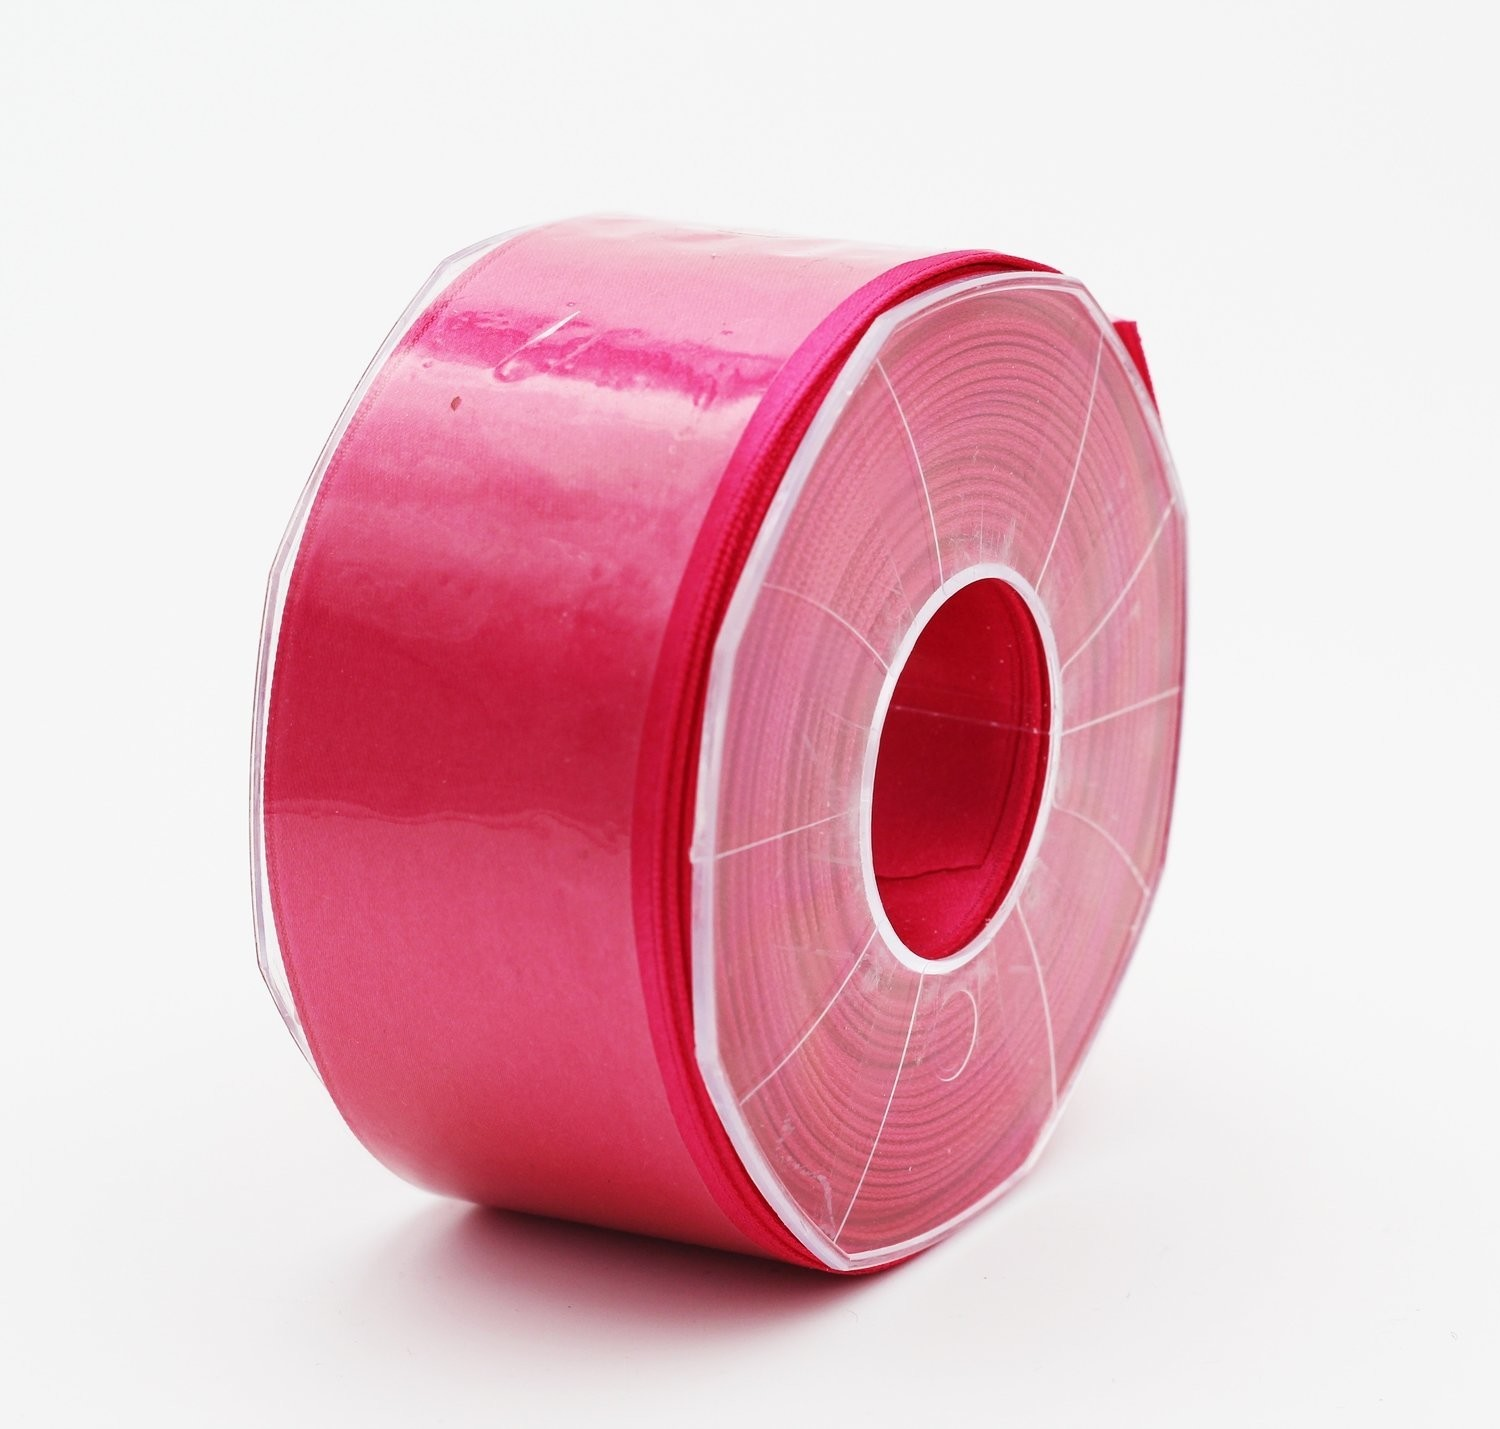 Furlanis nastro di raso fuxia scuro colore 26 mm. 48 Mt. 25